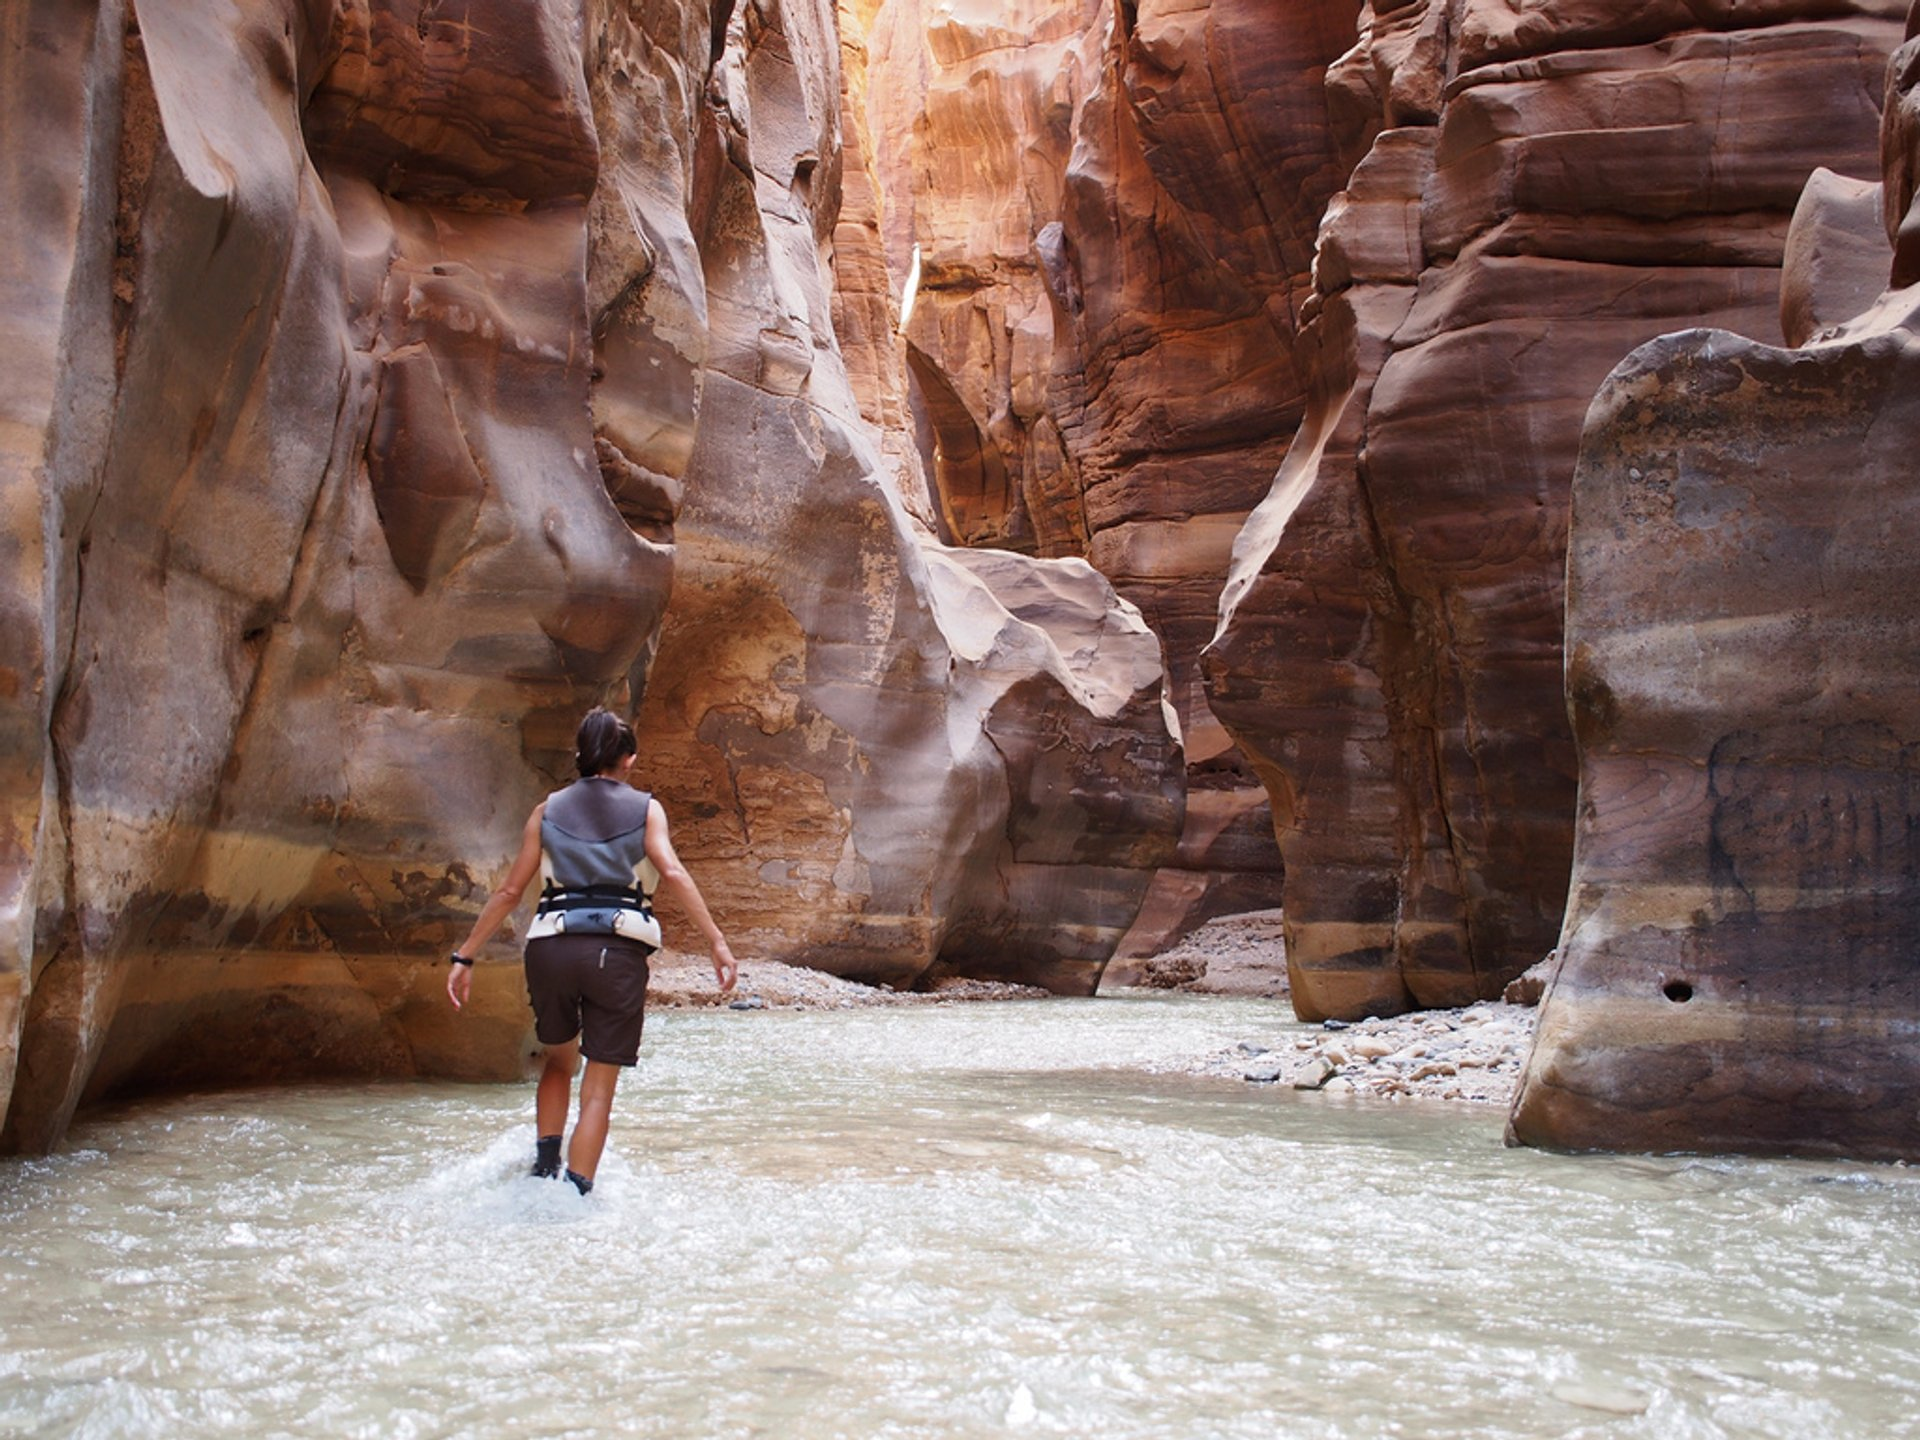 Canyoning in Jordan 2020 - Best Time